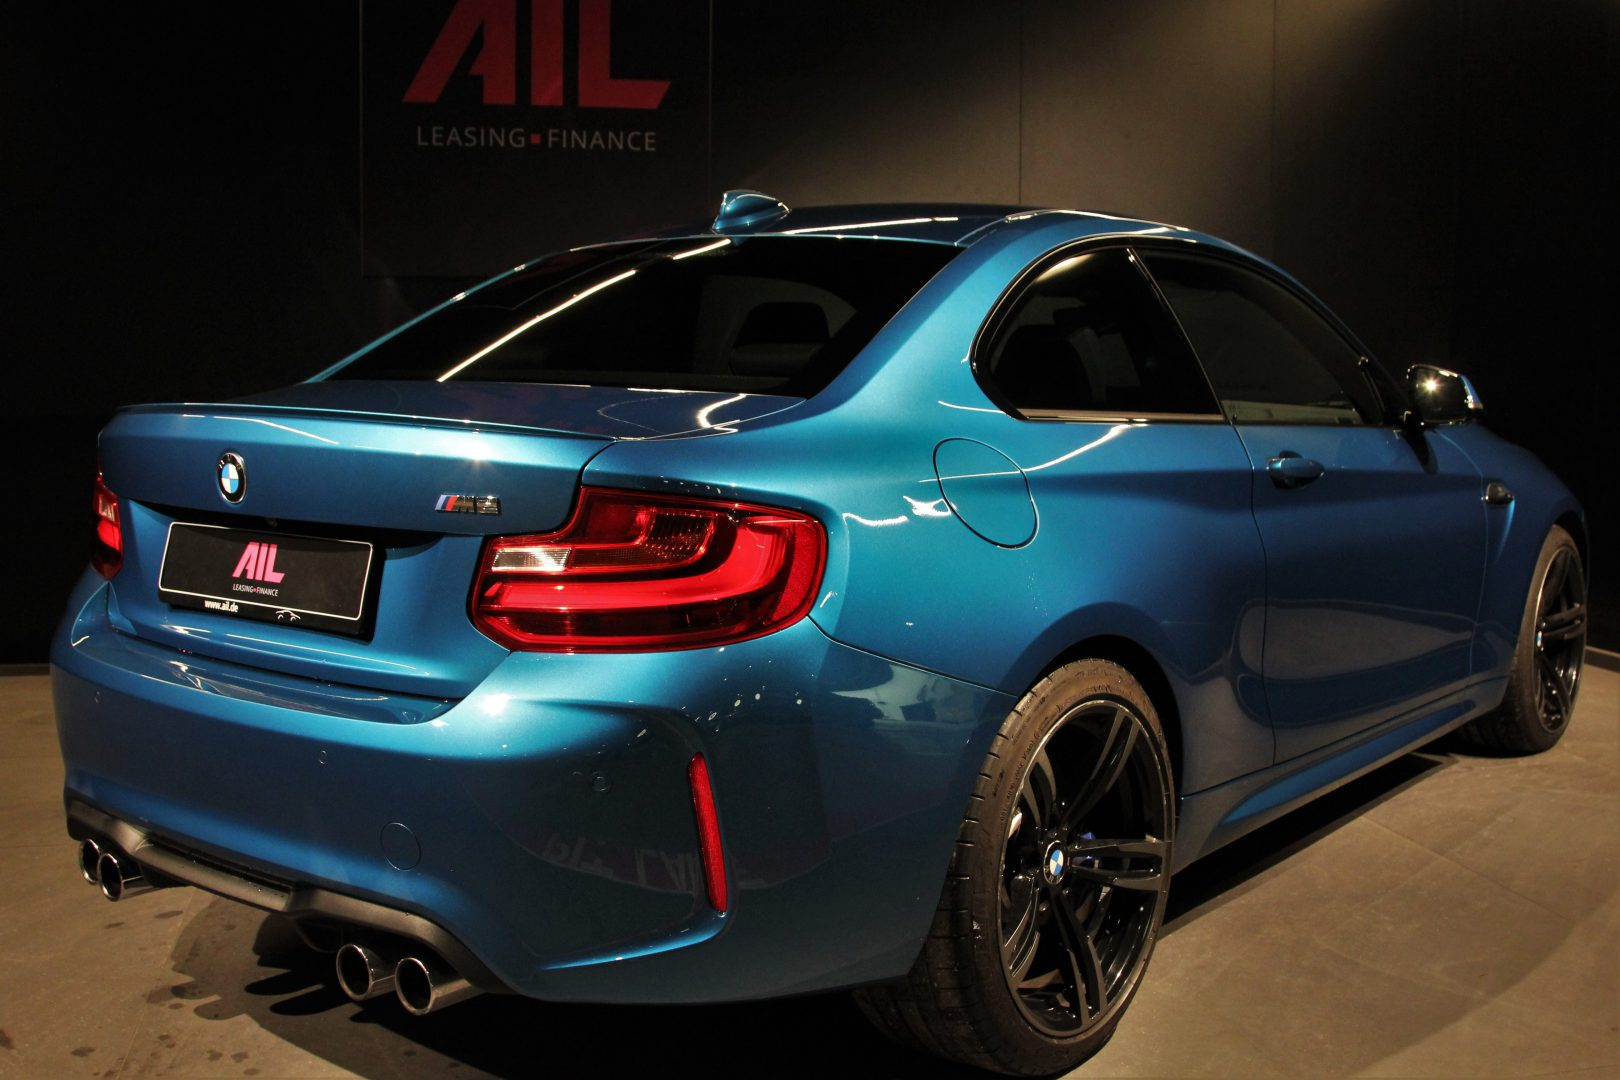 AIL BMW M2 LONG BEACH BLUE DKG  1